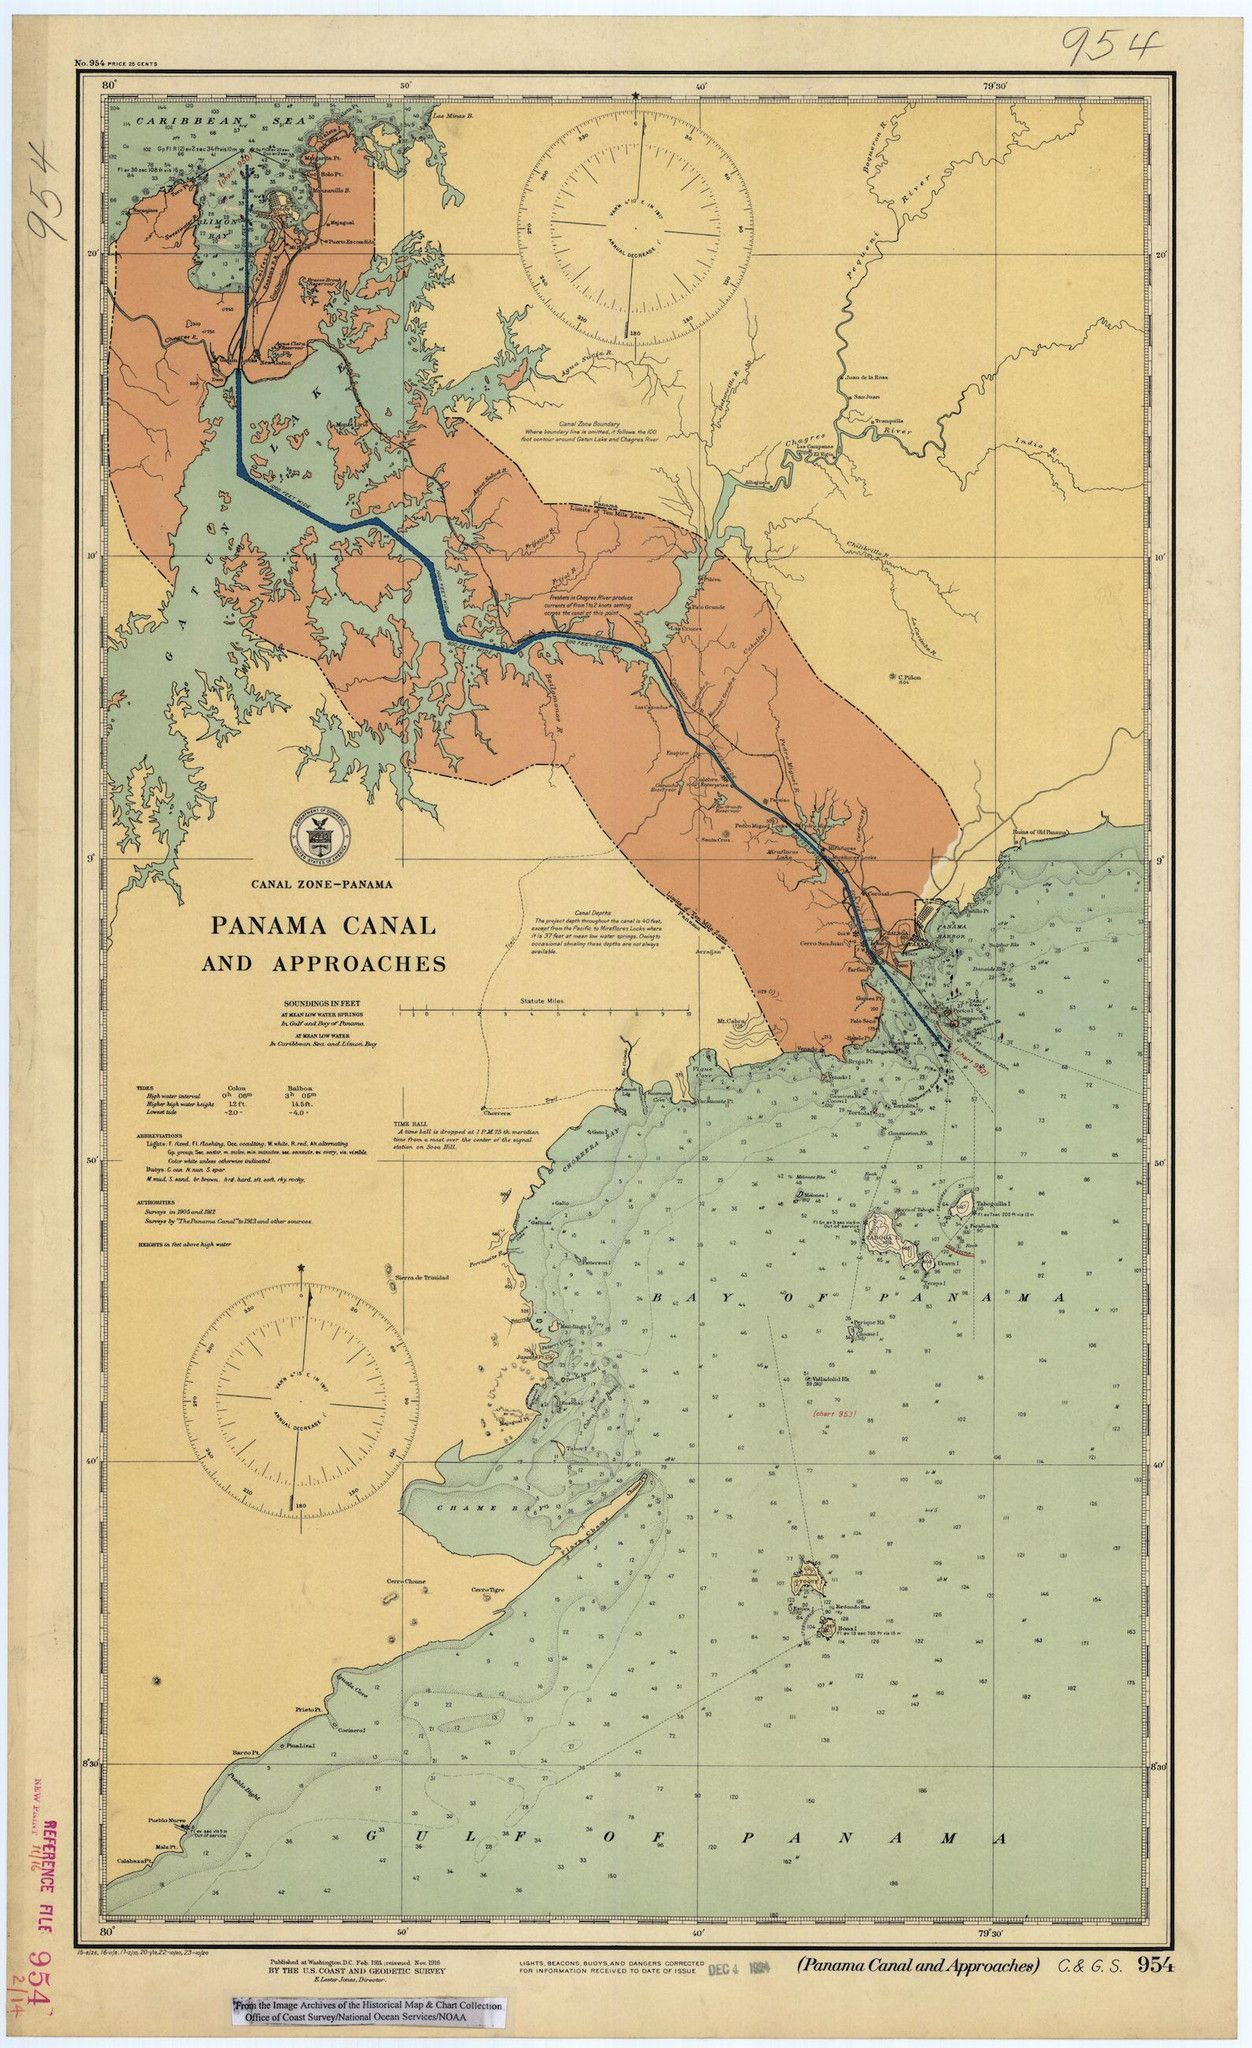 Panama Canal Map and Approaches - Historical Chart 1923 | Pinterest ...